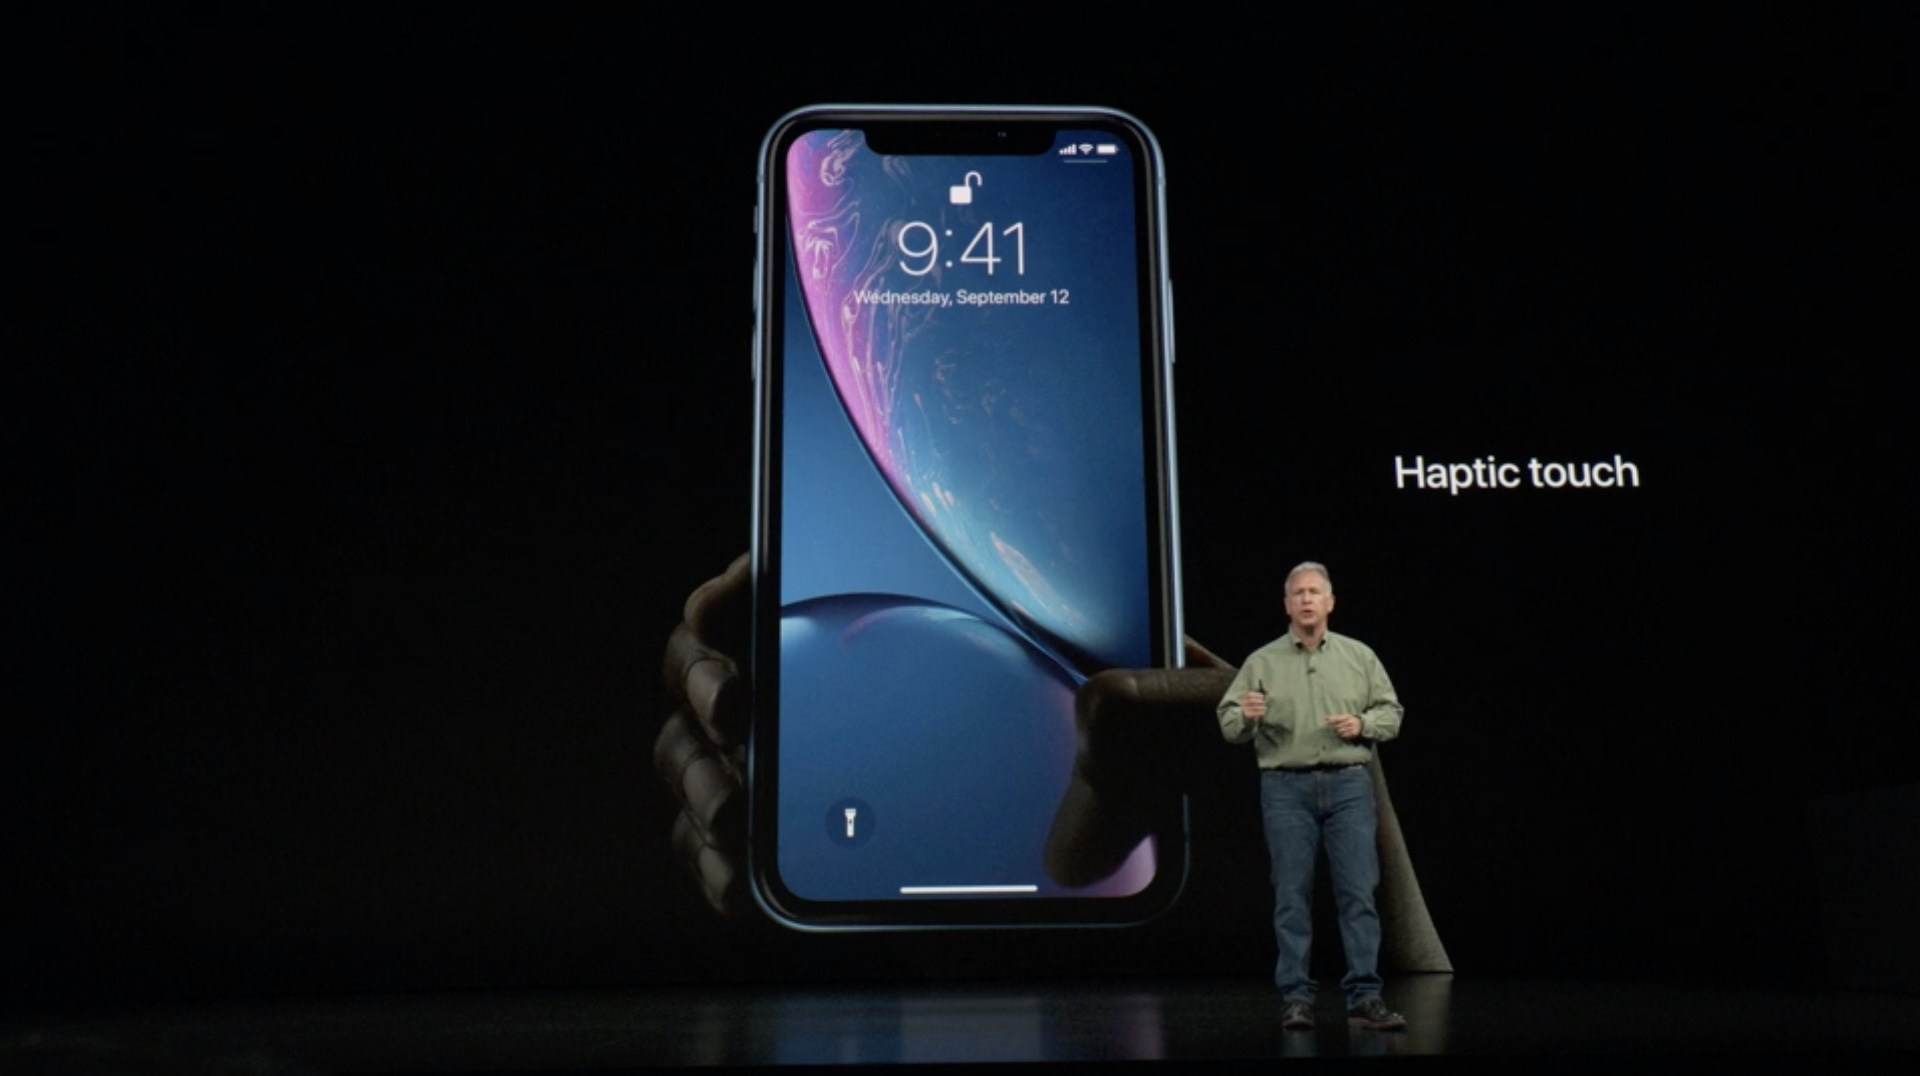 Gather around apple event 2018 2465